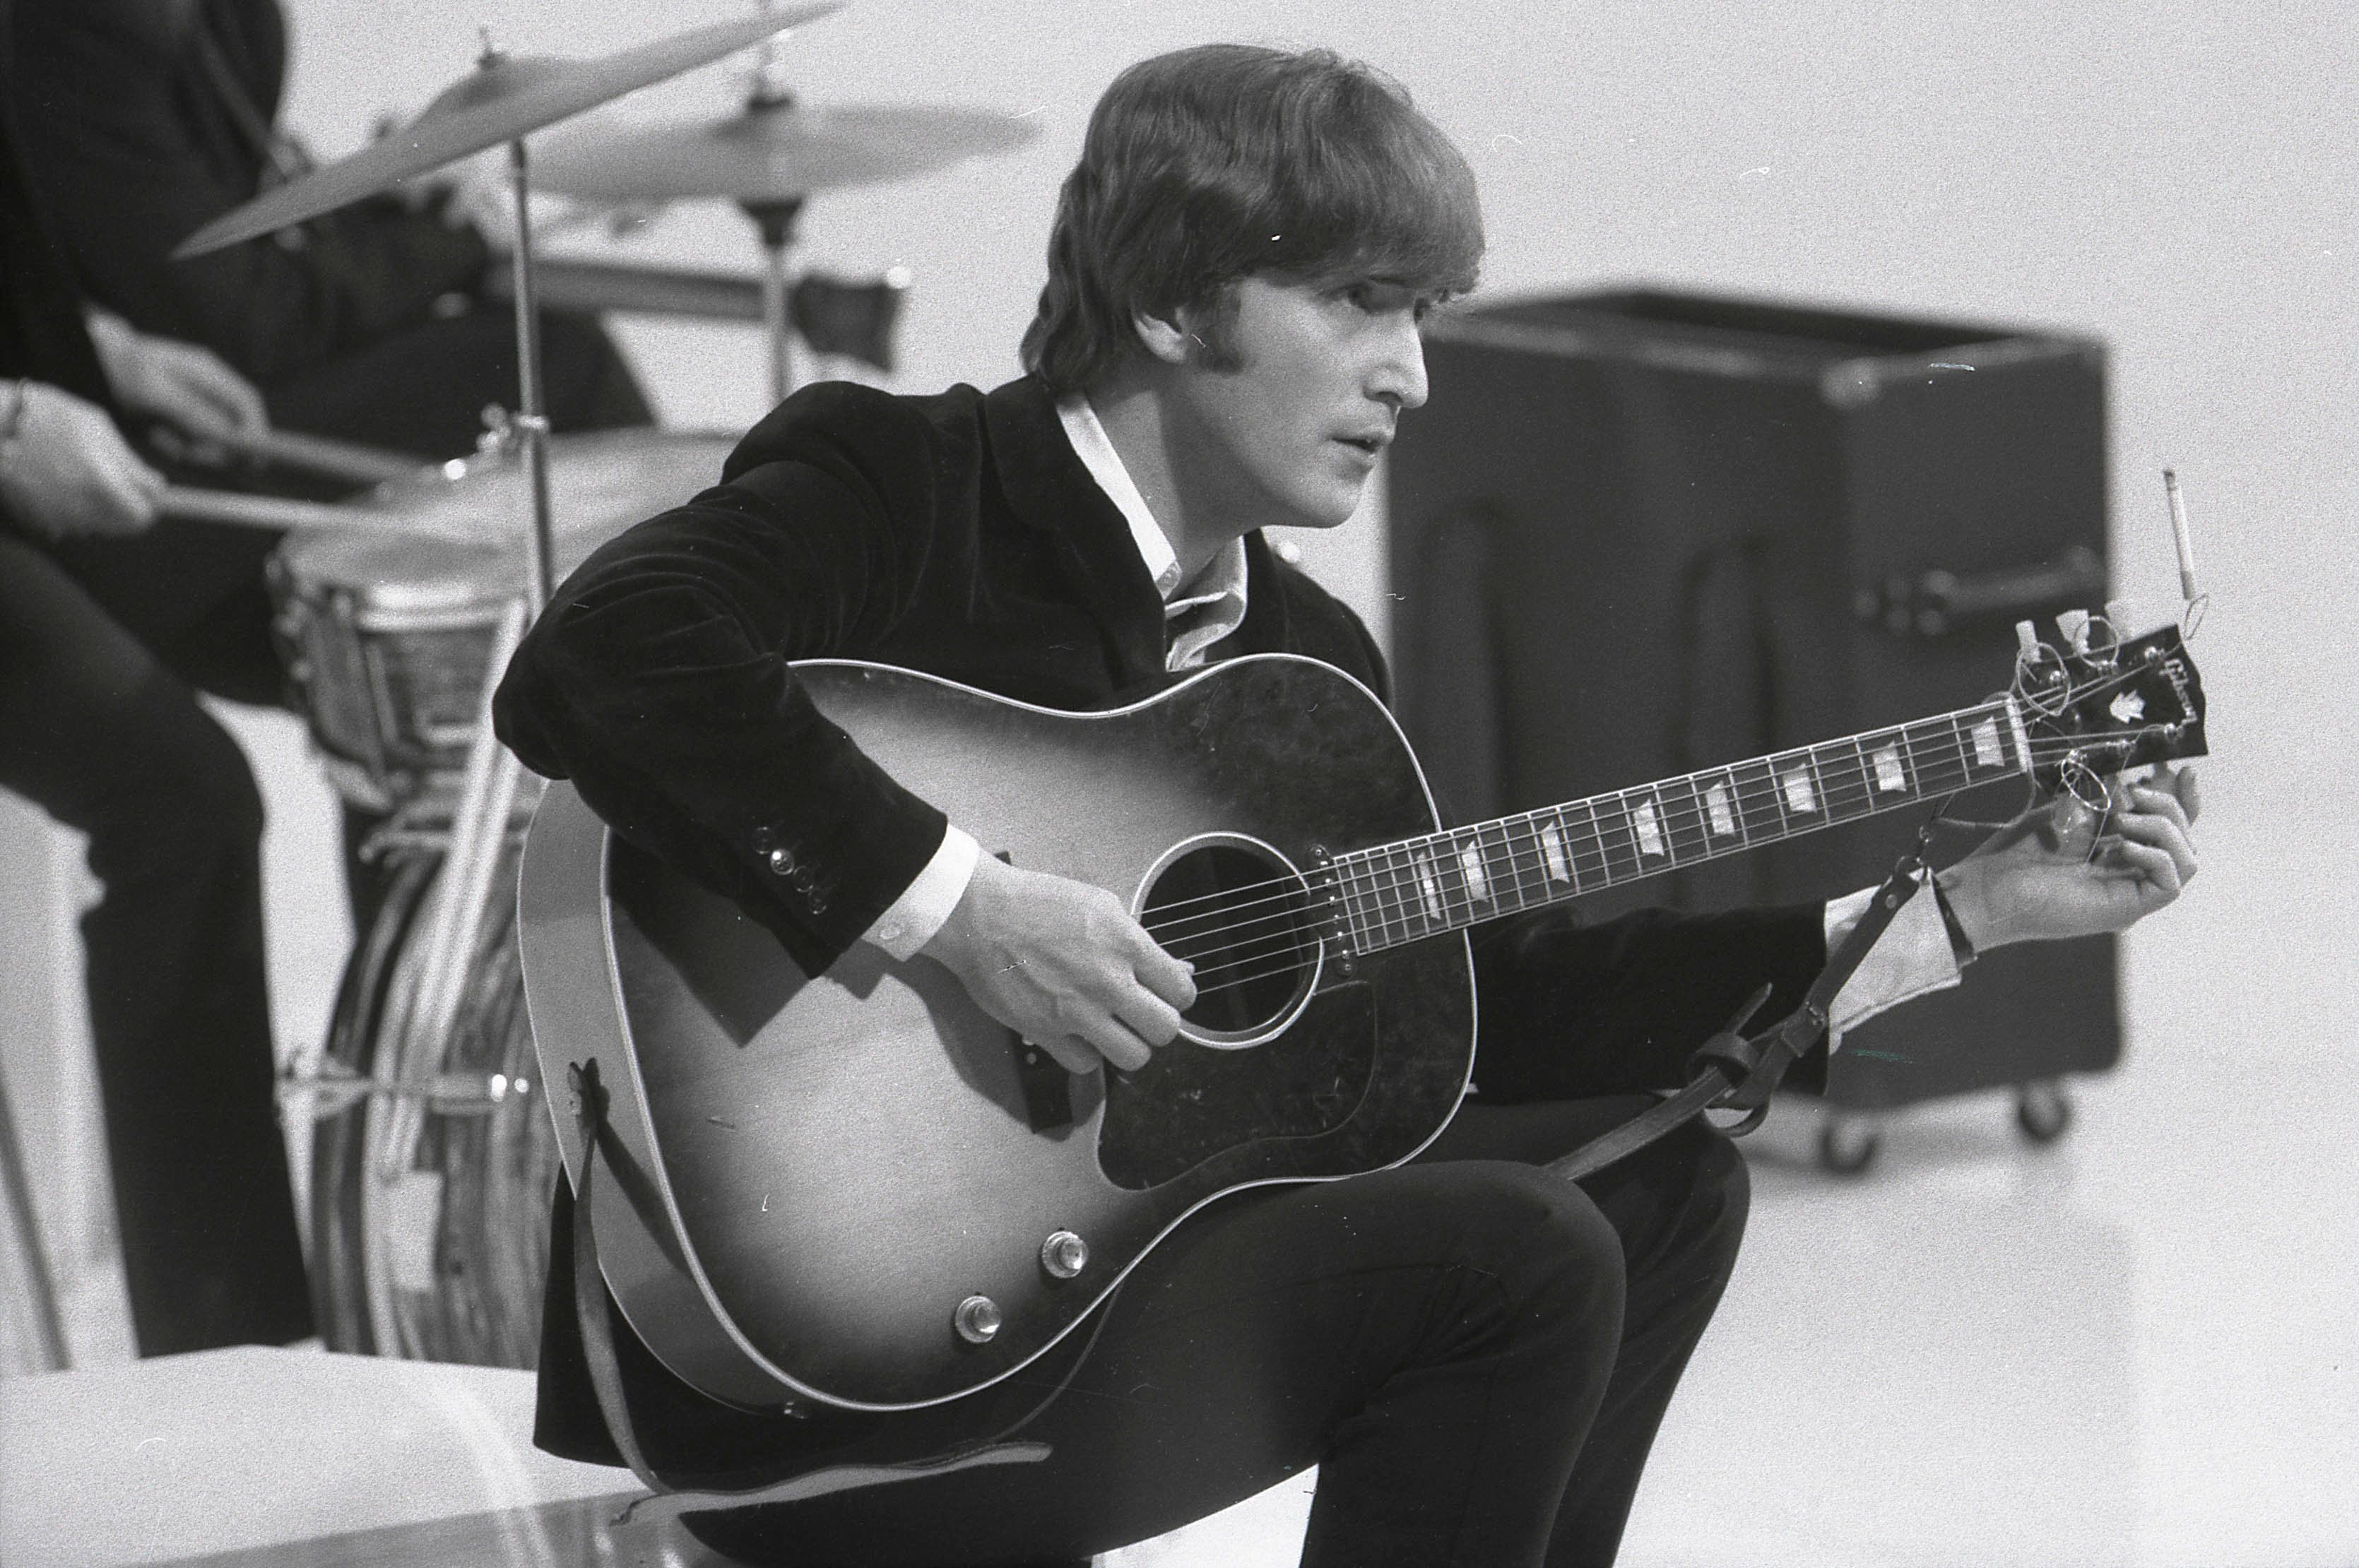 UNSPECIFIED - CIRCA 1960:  Photo of BEATLES and John LENNON; of the Beatles, tuning guitar (Gibson J160E acoustic) during the filming of 'A Hard Day's Night' at the Scala Theatre  (Photo by Max Scheler - K & K/Redferns)